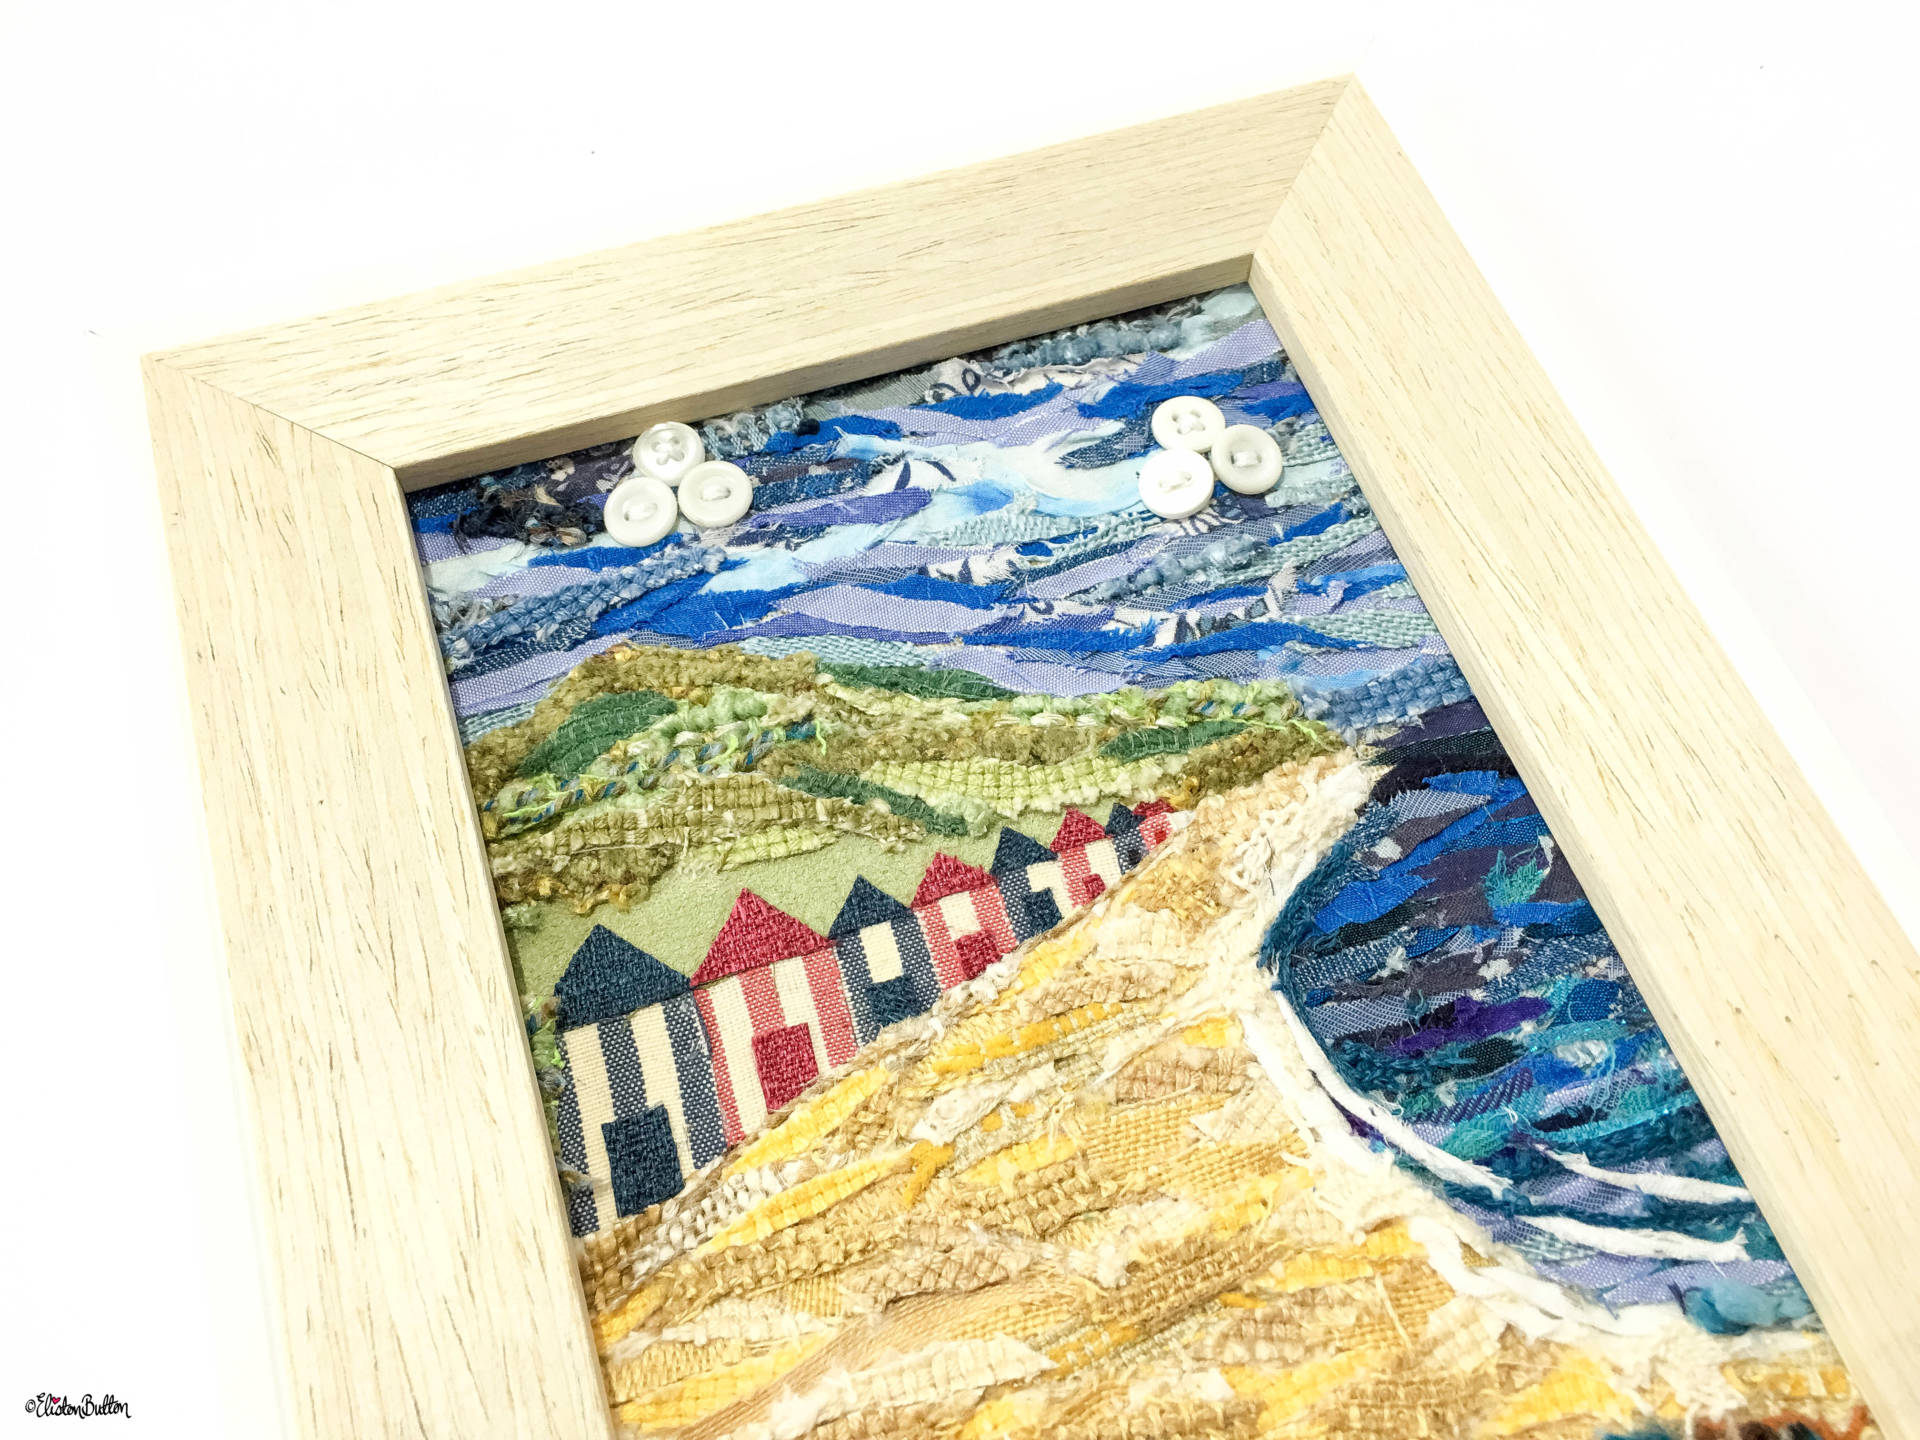 Original 'Beach Huts by the Sea' Original Seaside Fabric Collage by Eliston Button Texture View - Create 30 – No. 16 & 17 – Seaside Fabric Collages at www.elistonbutton.com - Eliston Button - That Crafty Kid – Art, Design, Craft & Adventure.